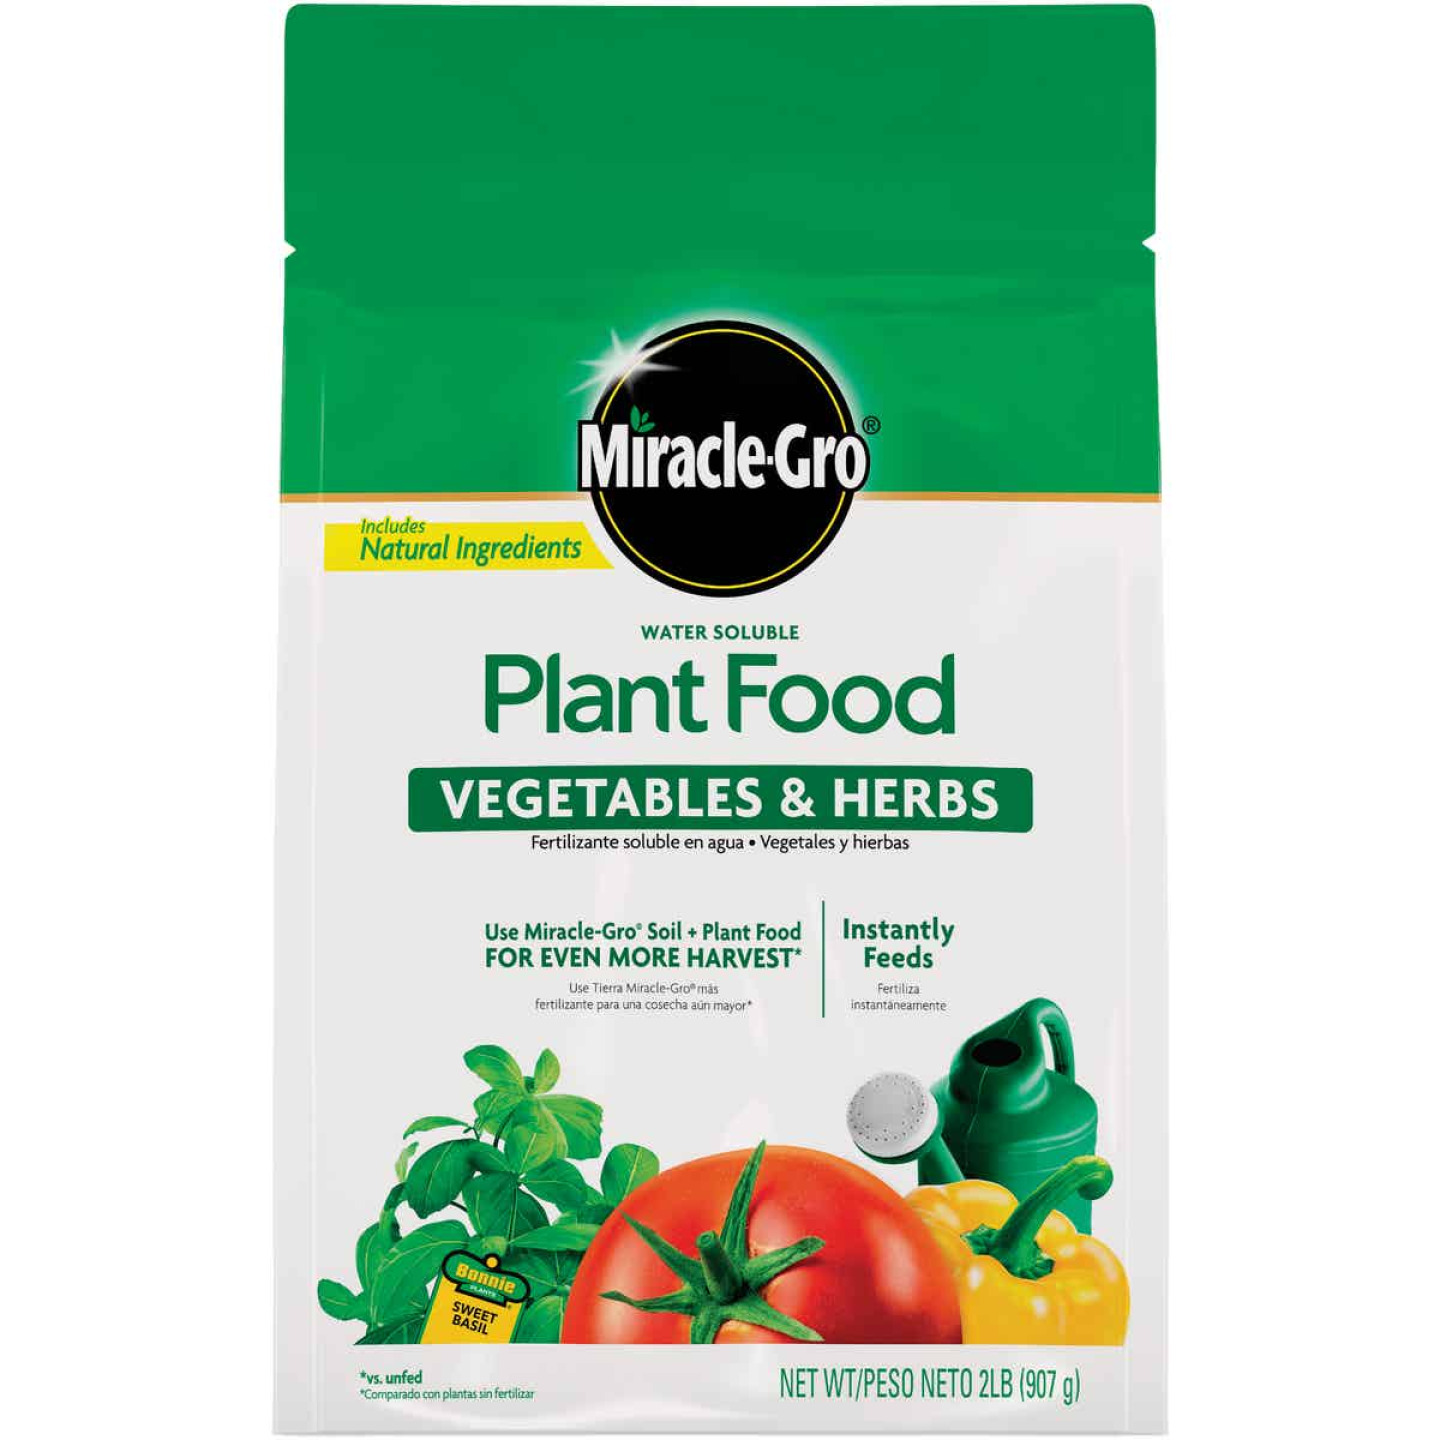 Miracle-Gro 2 Lb. 18-18-21 Vegetable & Herb Dry Plant Food Image 1